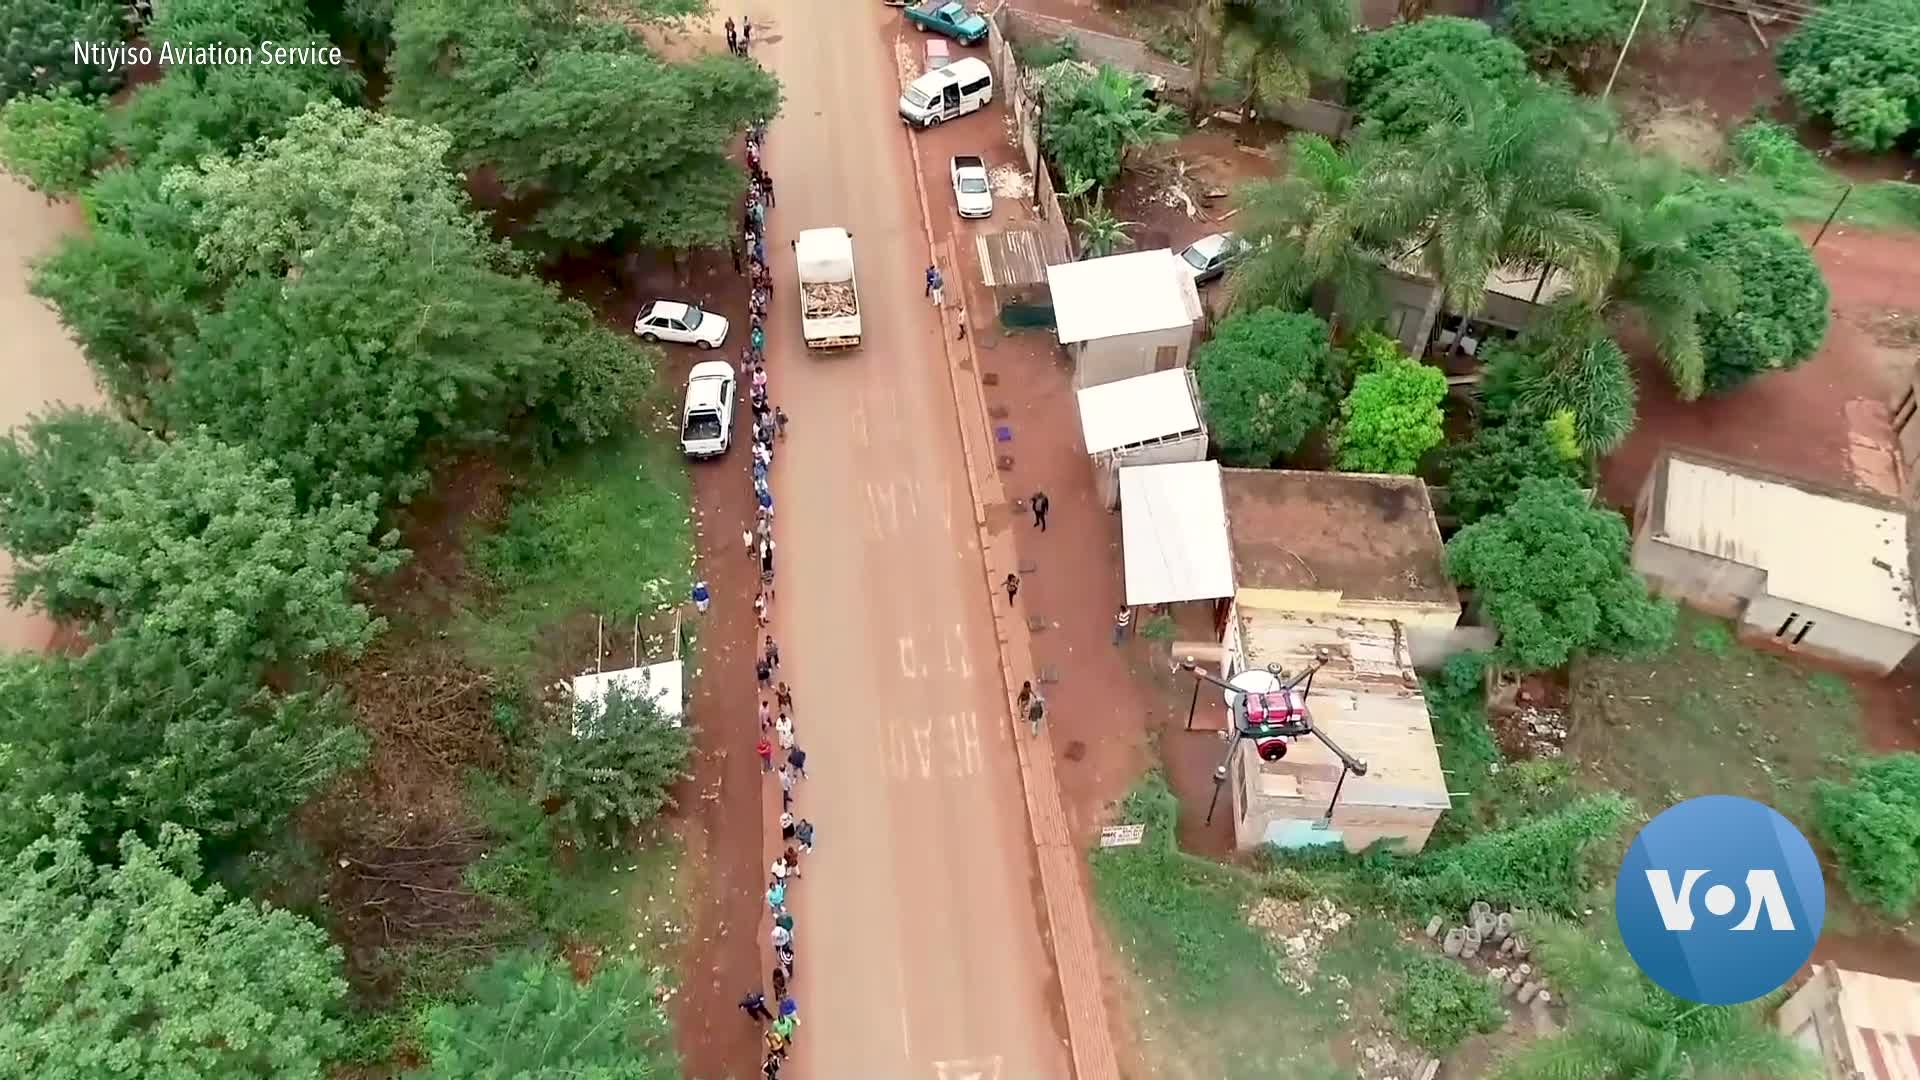 Drones Spread Word About COVID-19 in Rural South Africa